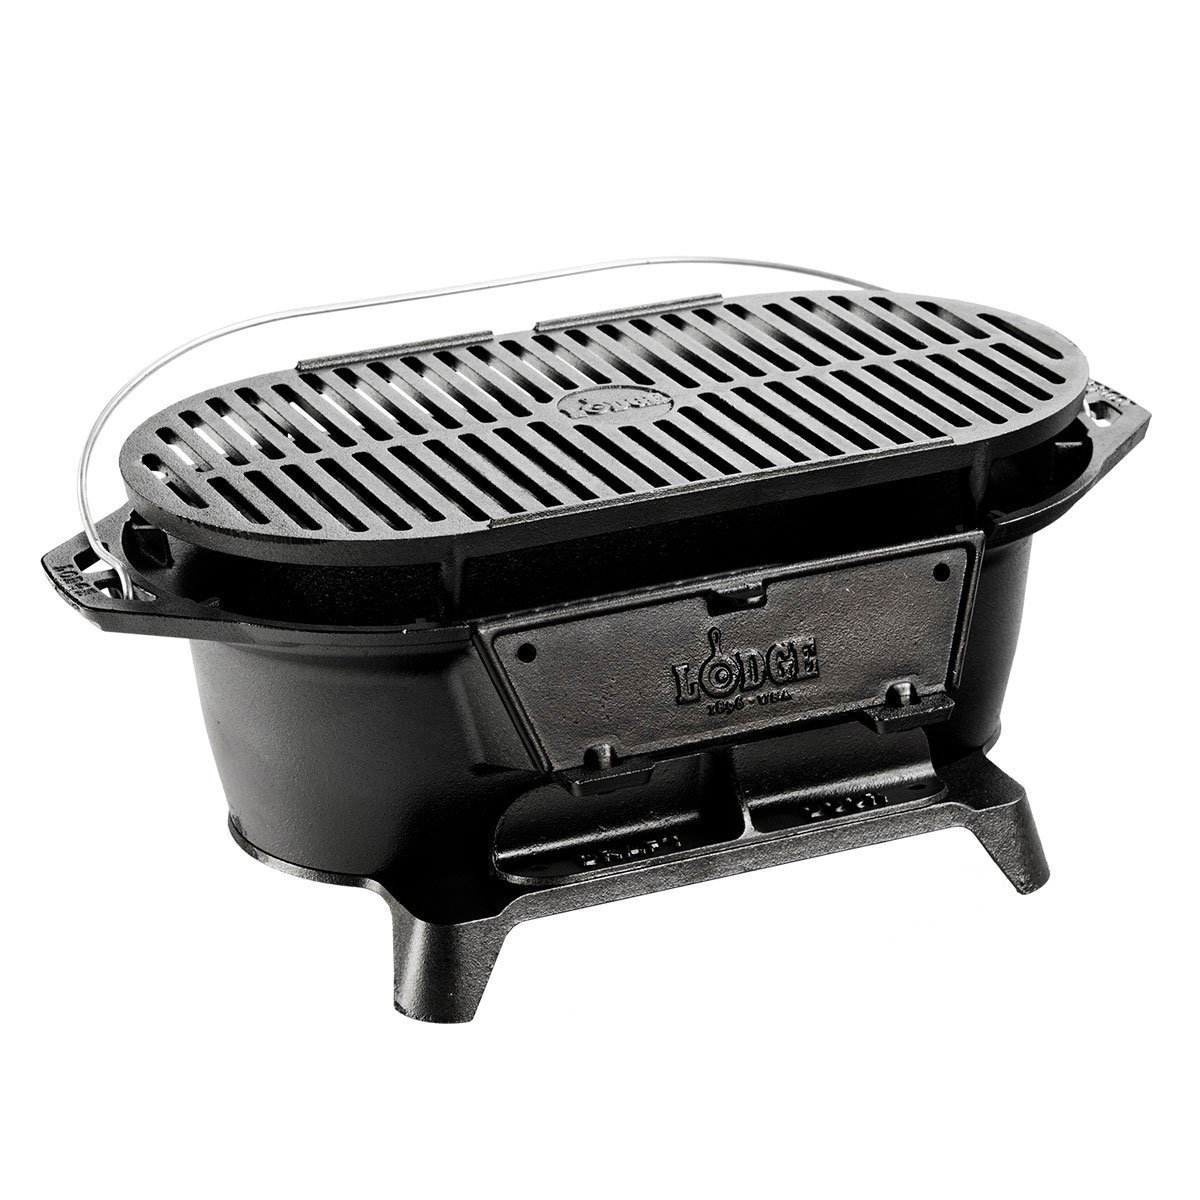 Amazon.com : Premium Bbq Grill For Cooking Charcoal Portable Flat Top For  Outdoor Patio Camping Or Backyard In Cast Iron Small Tabletop Design :  Garden U0026 ...